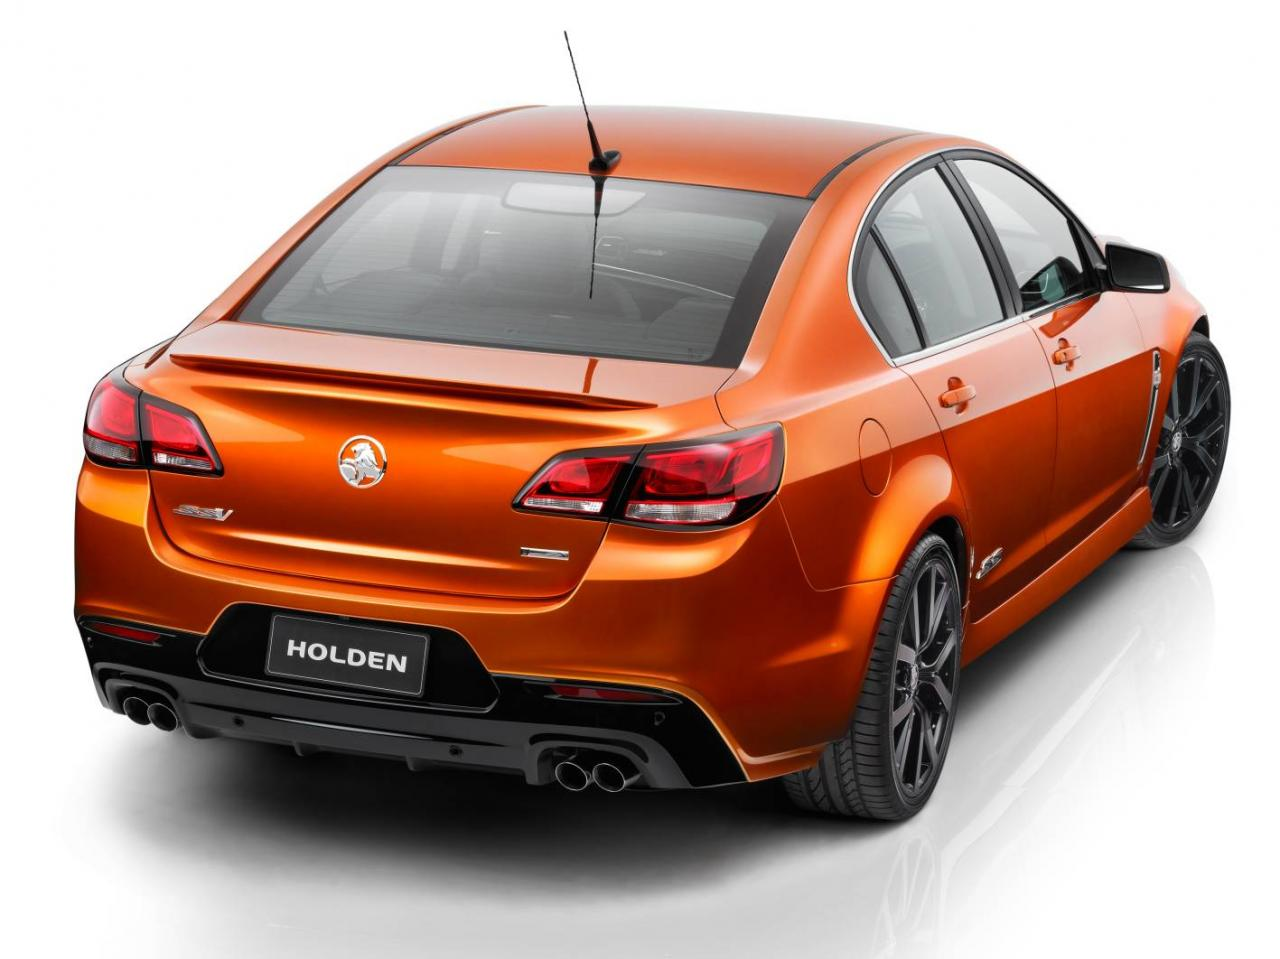 [Resim: Holden+VF+Commodore+SS+V+2.jpg]